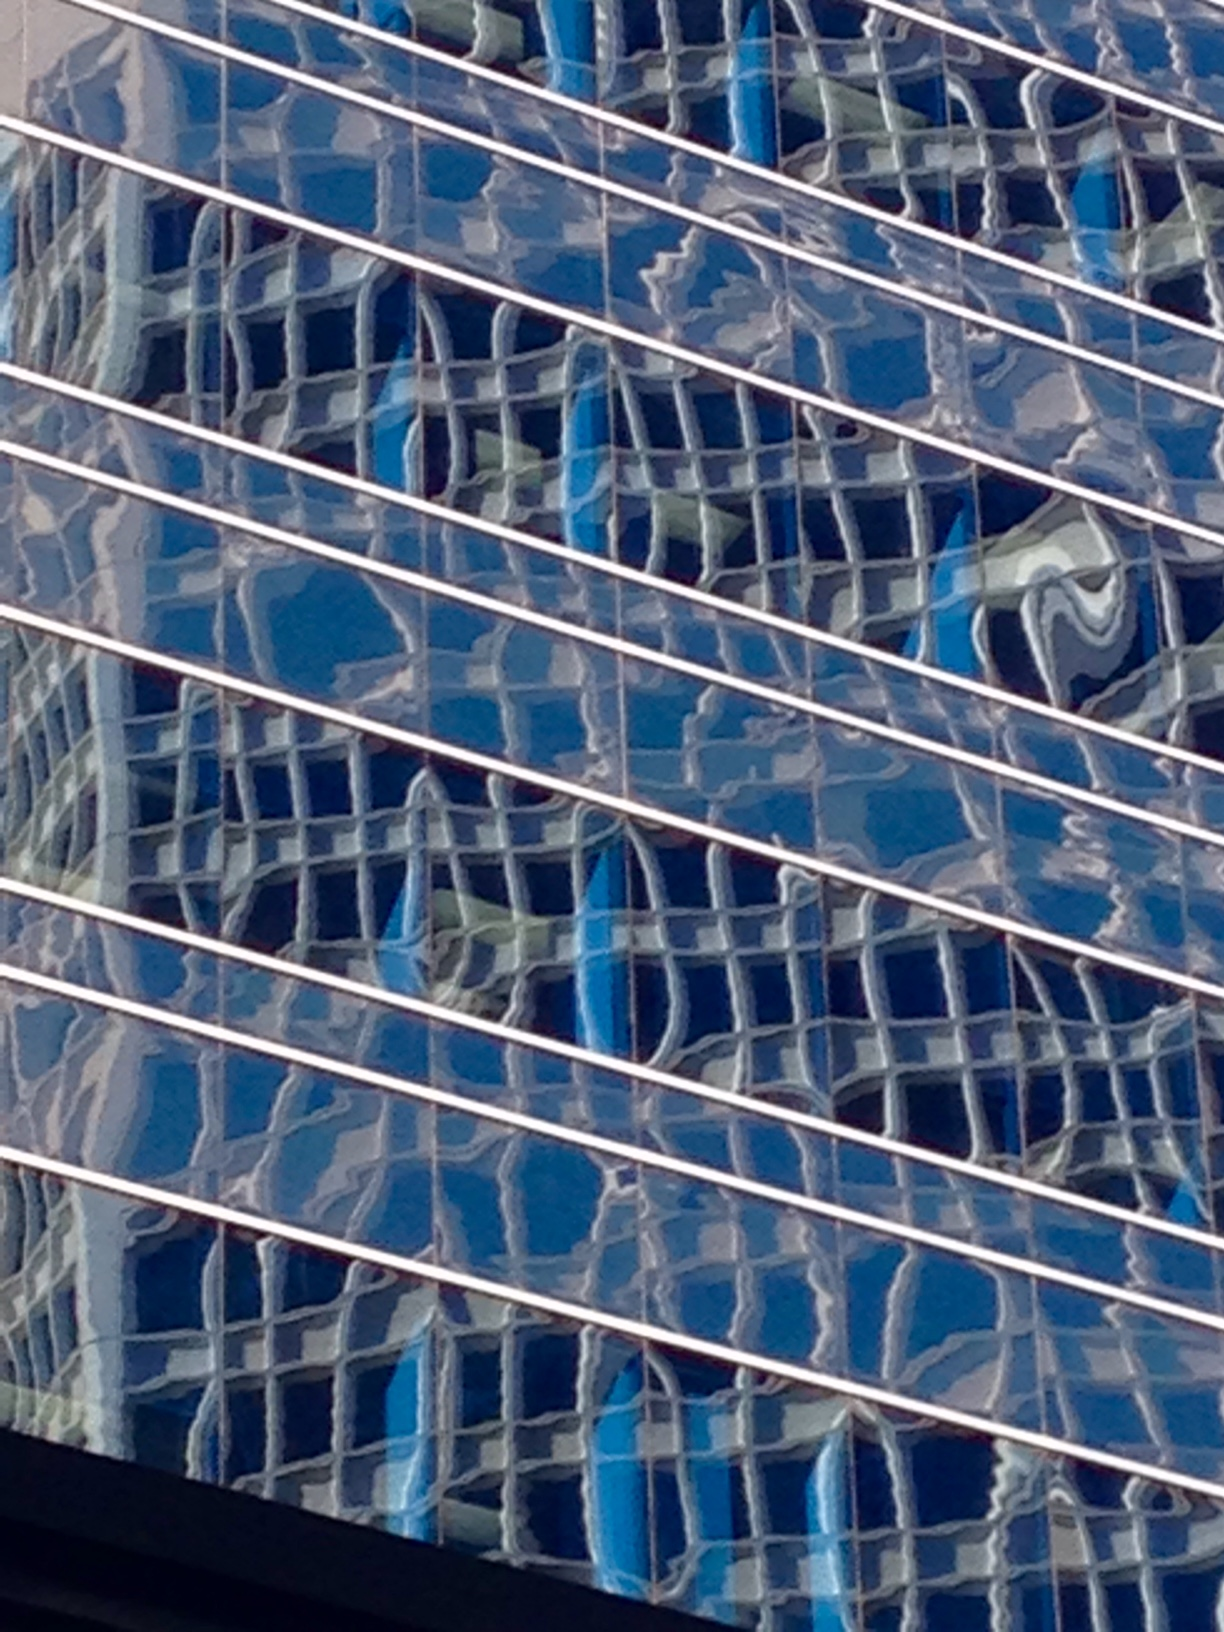 Blue Abstraction downtown Calgary